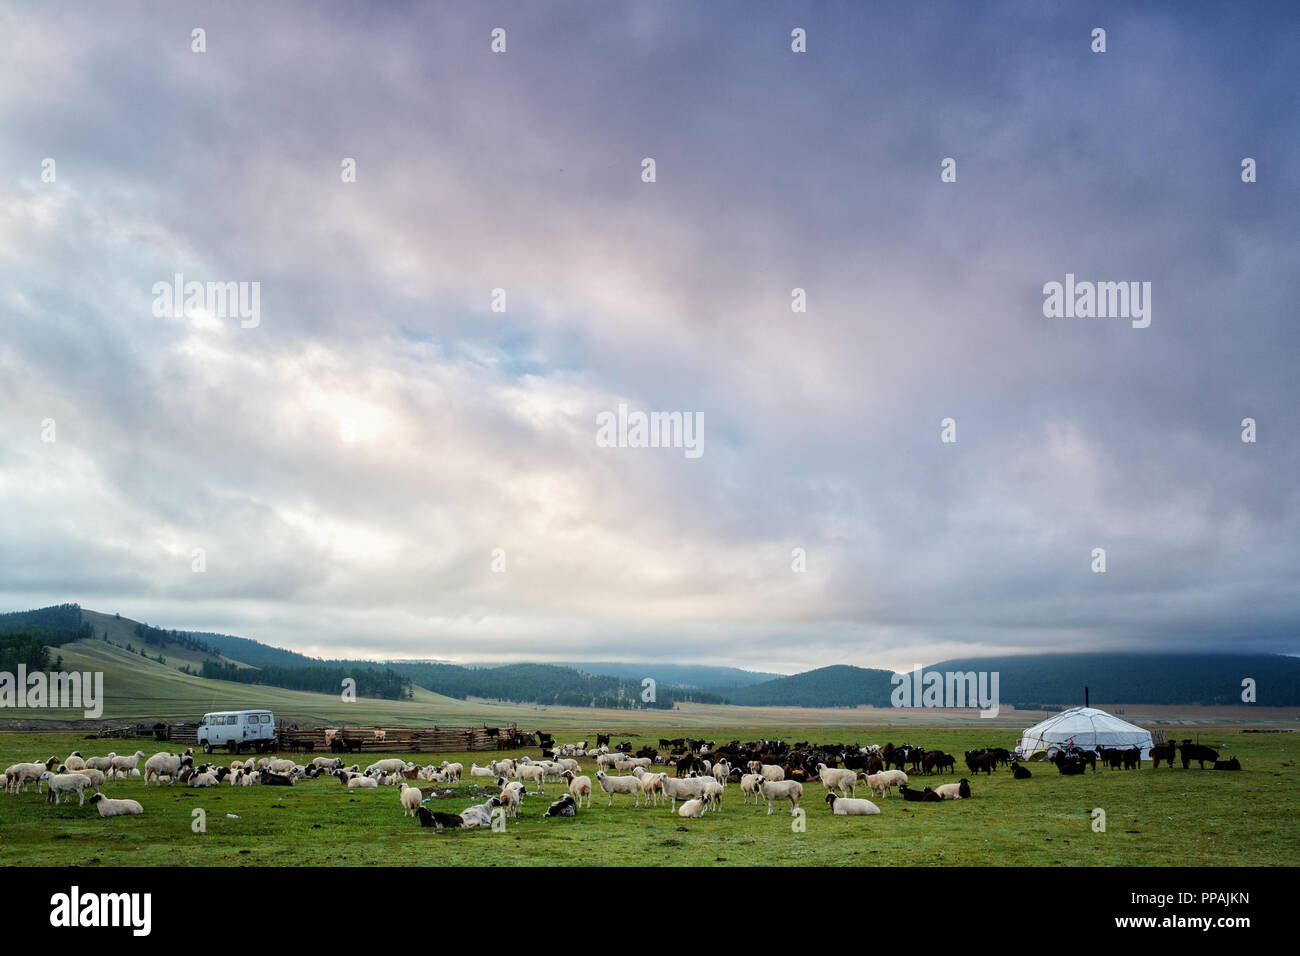 Dramatic sky over a Nomad Camp at lake khovsgol, Khatgal, Mongolia - Stock Image